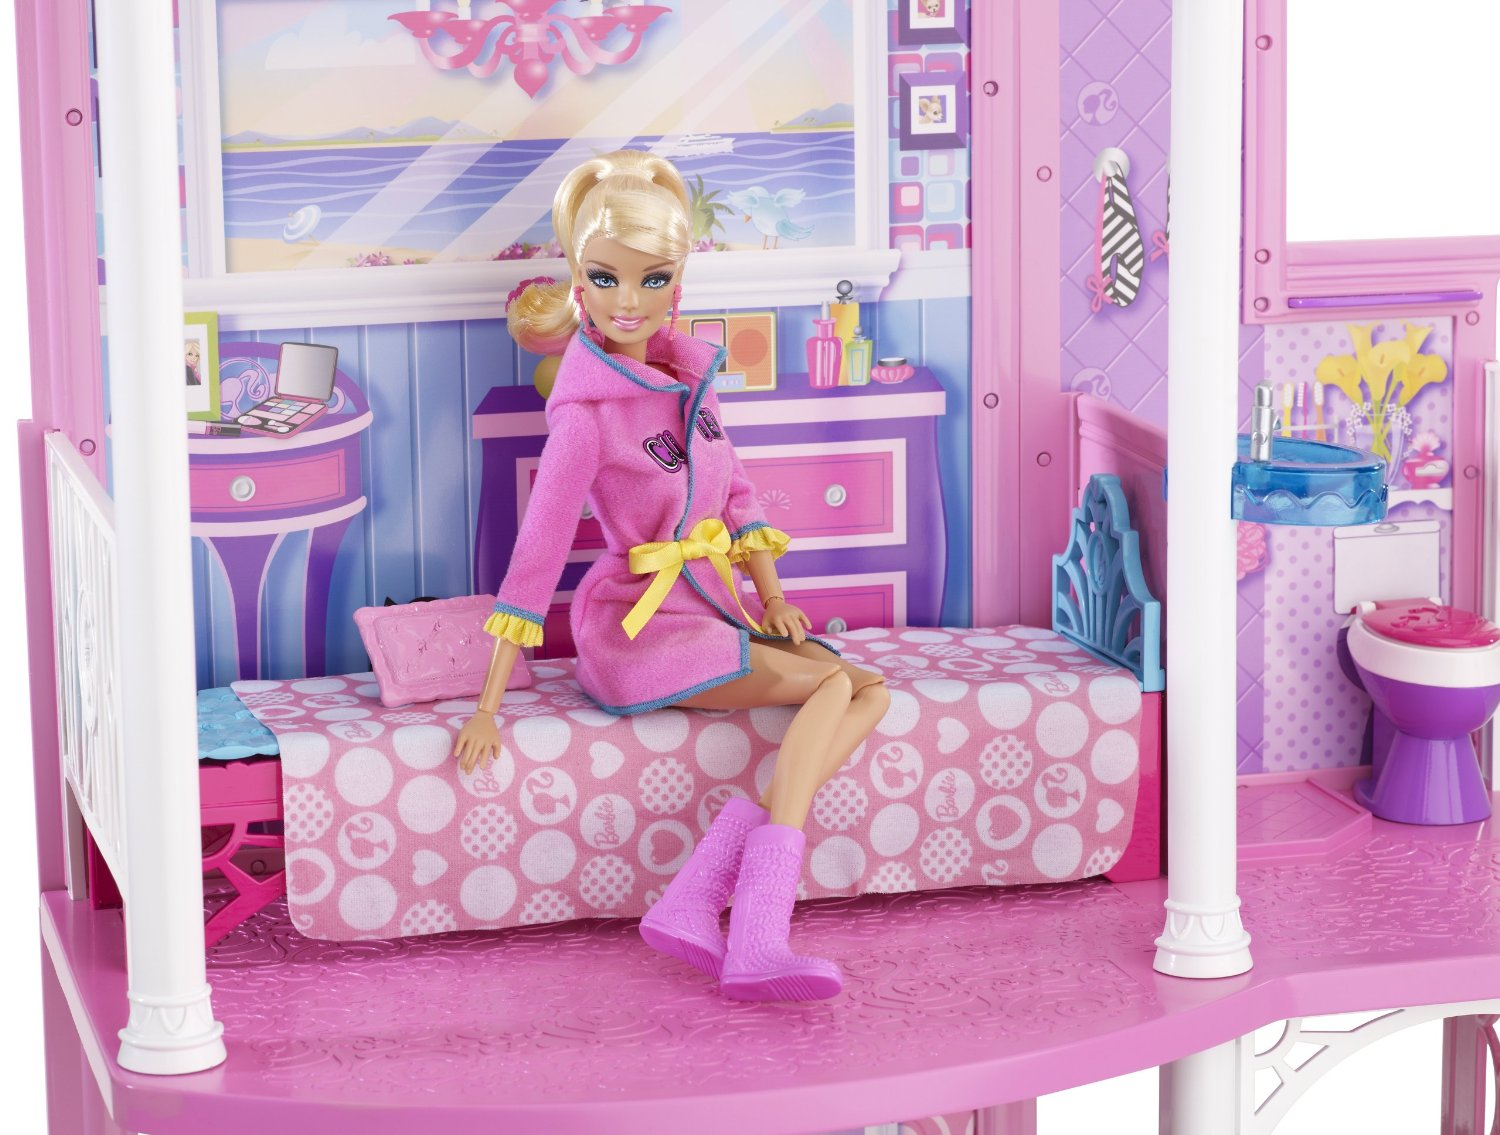 barbie bedroom for girls - photo #6